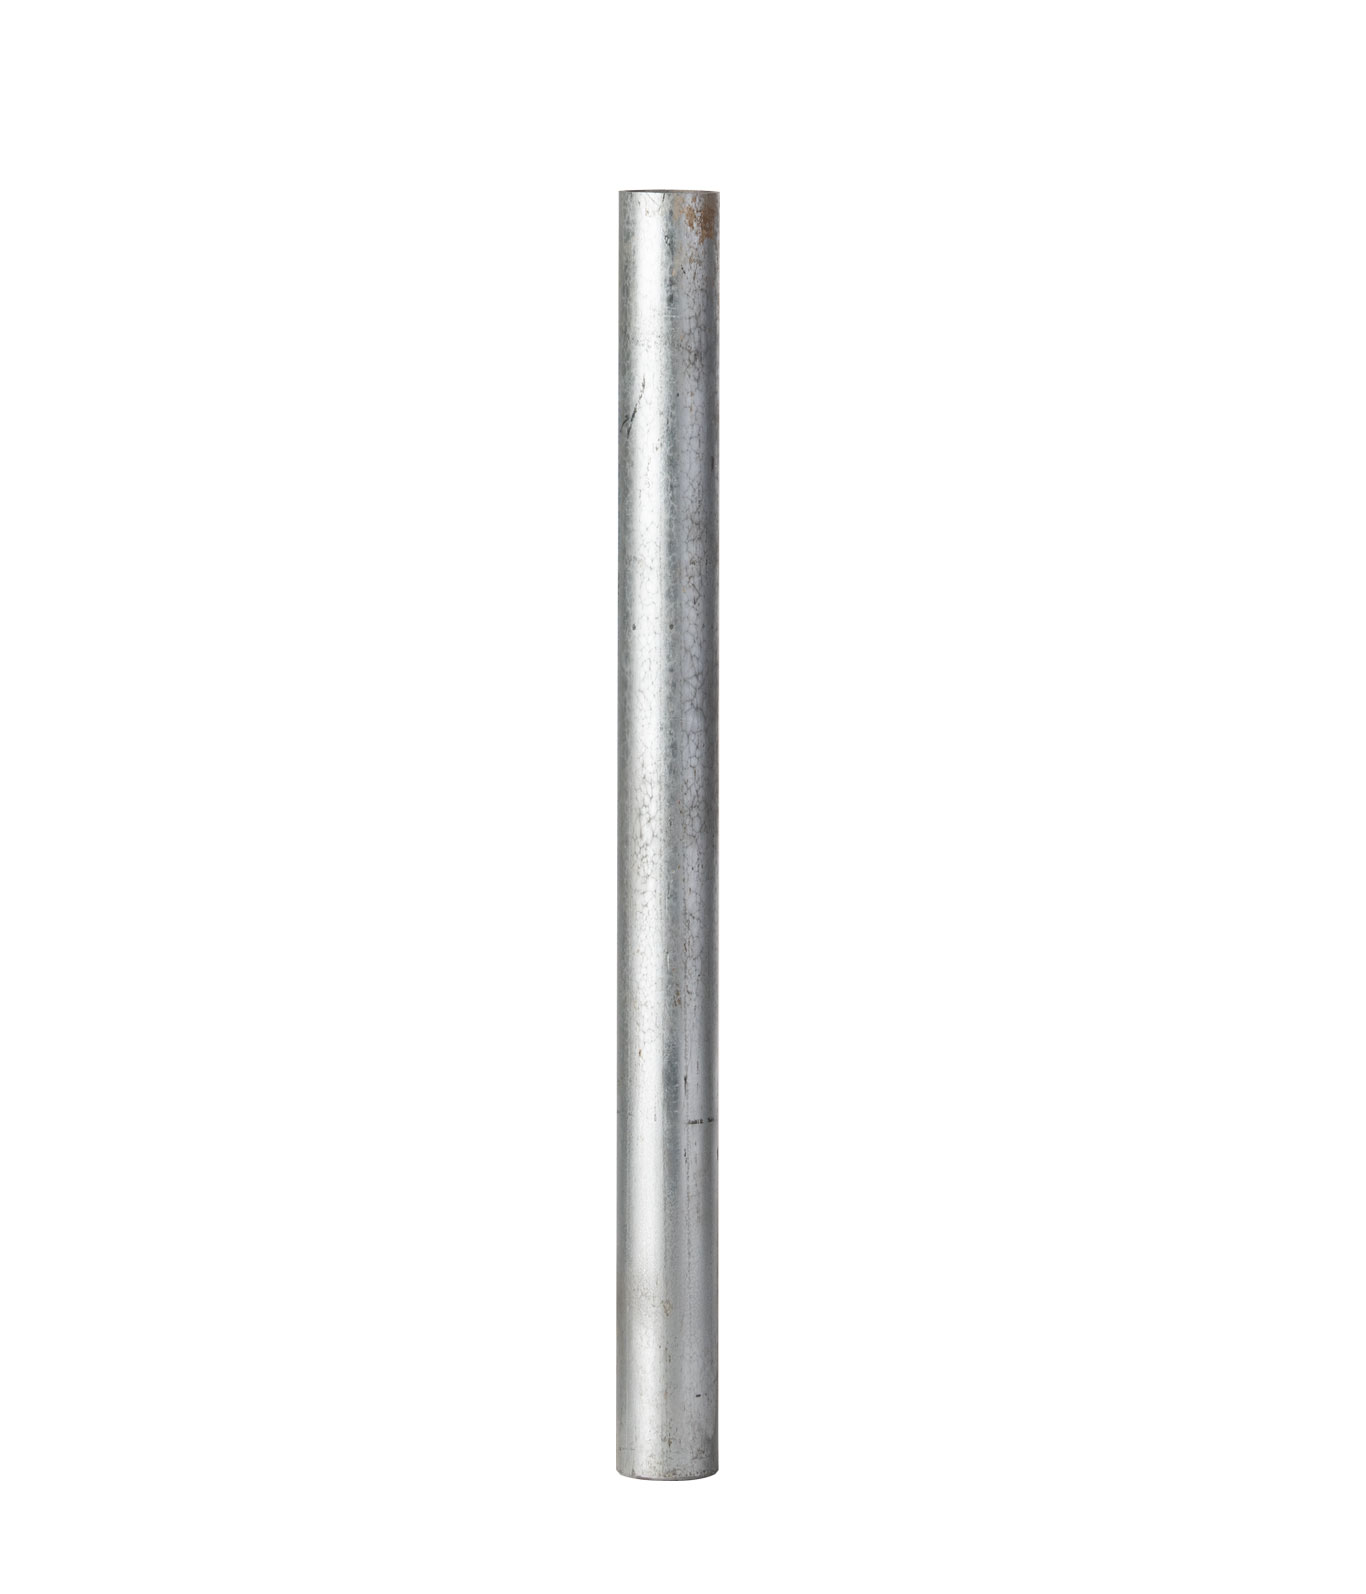 Stainless Steel Bollard with 4 Hole Fitting